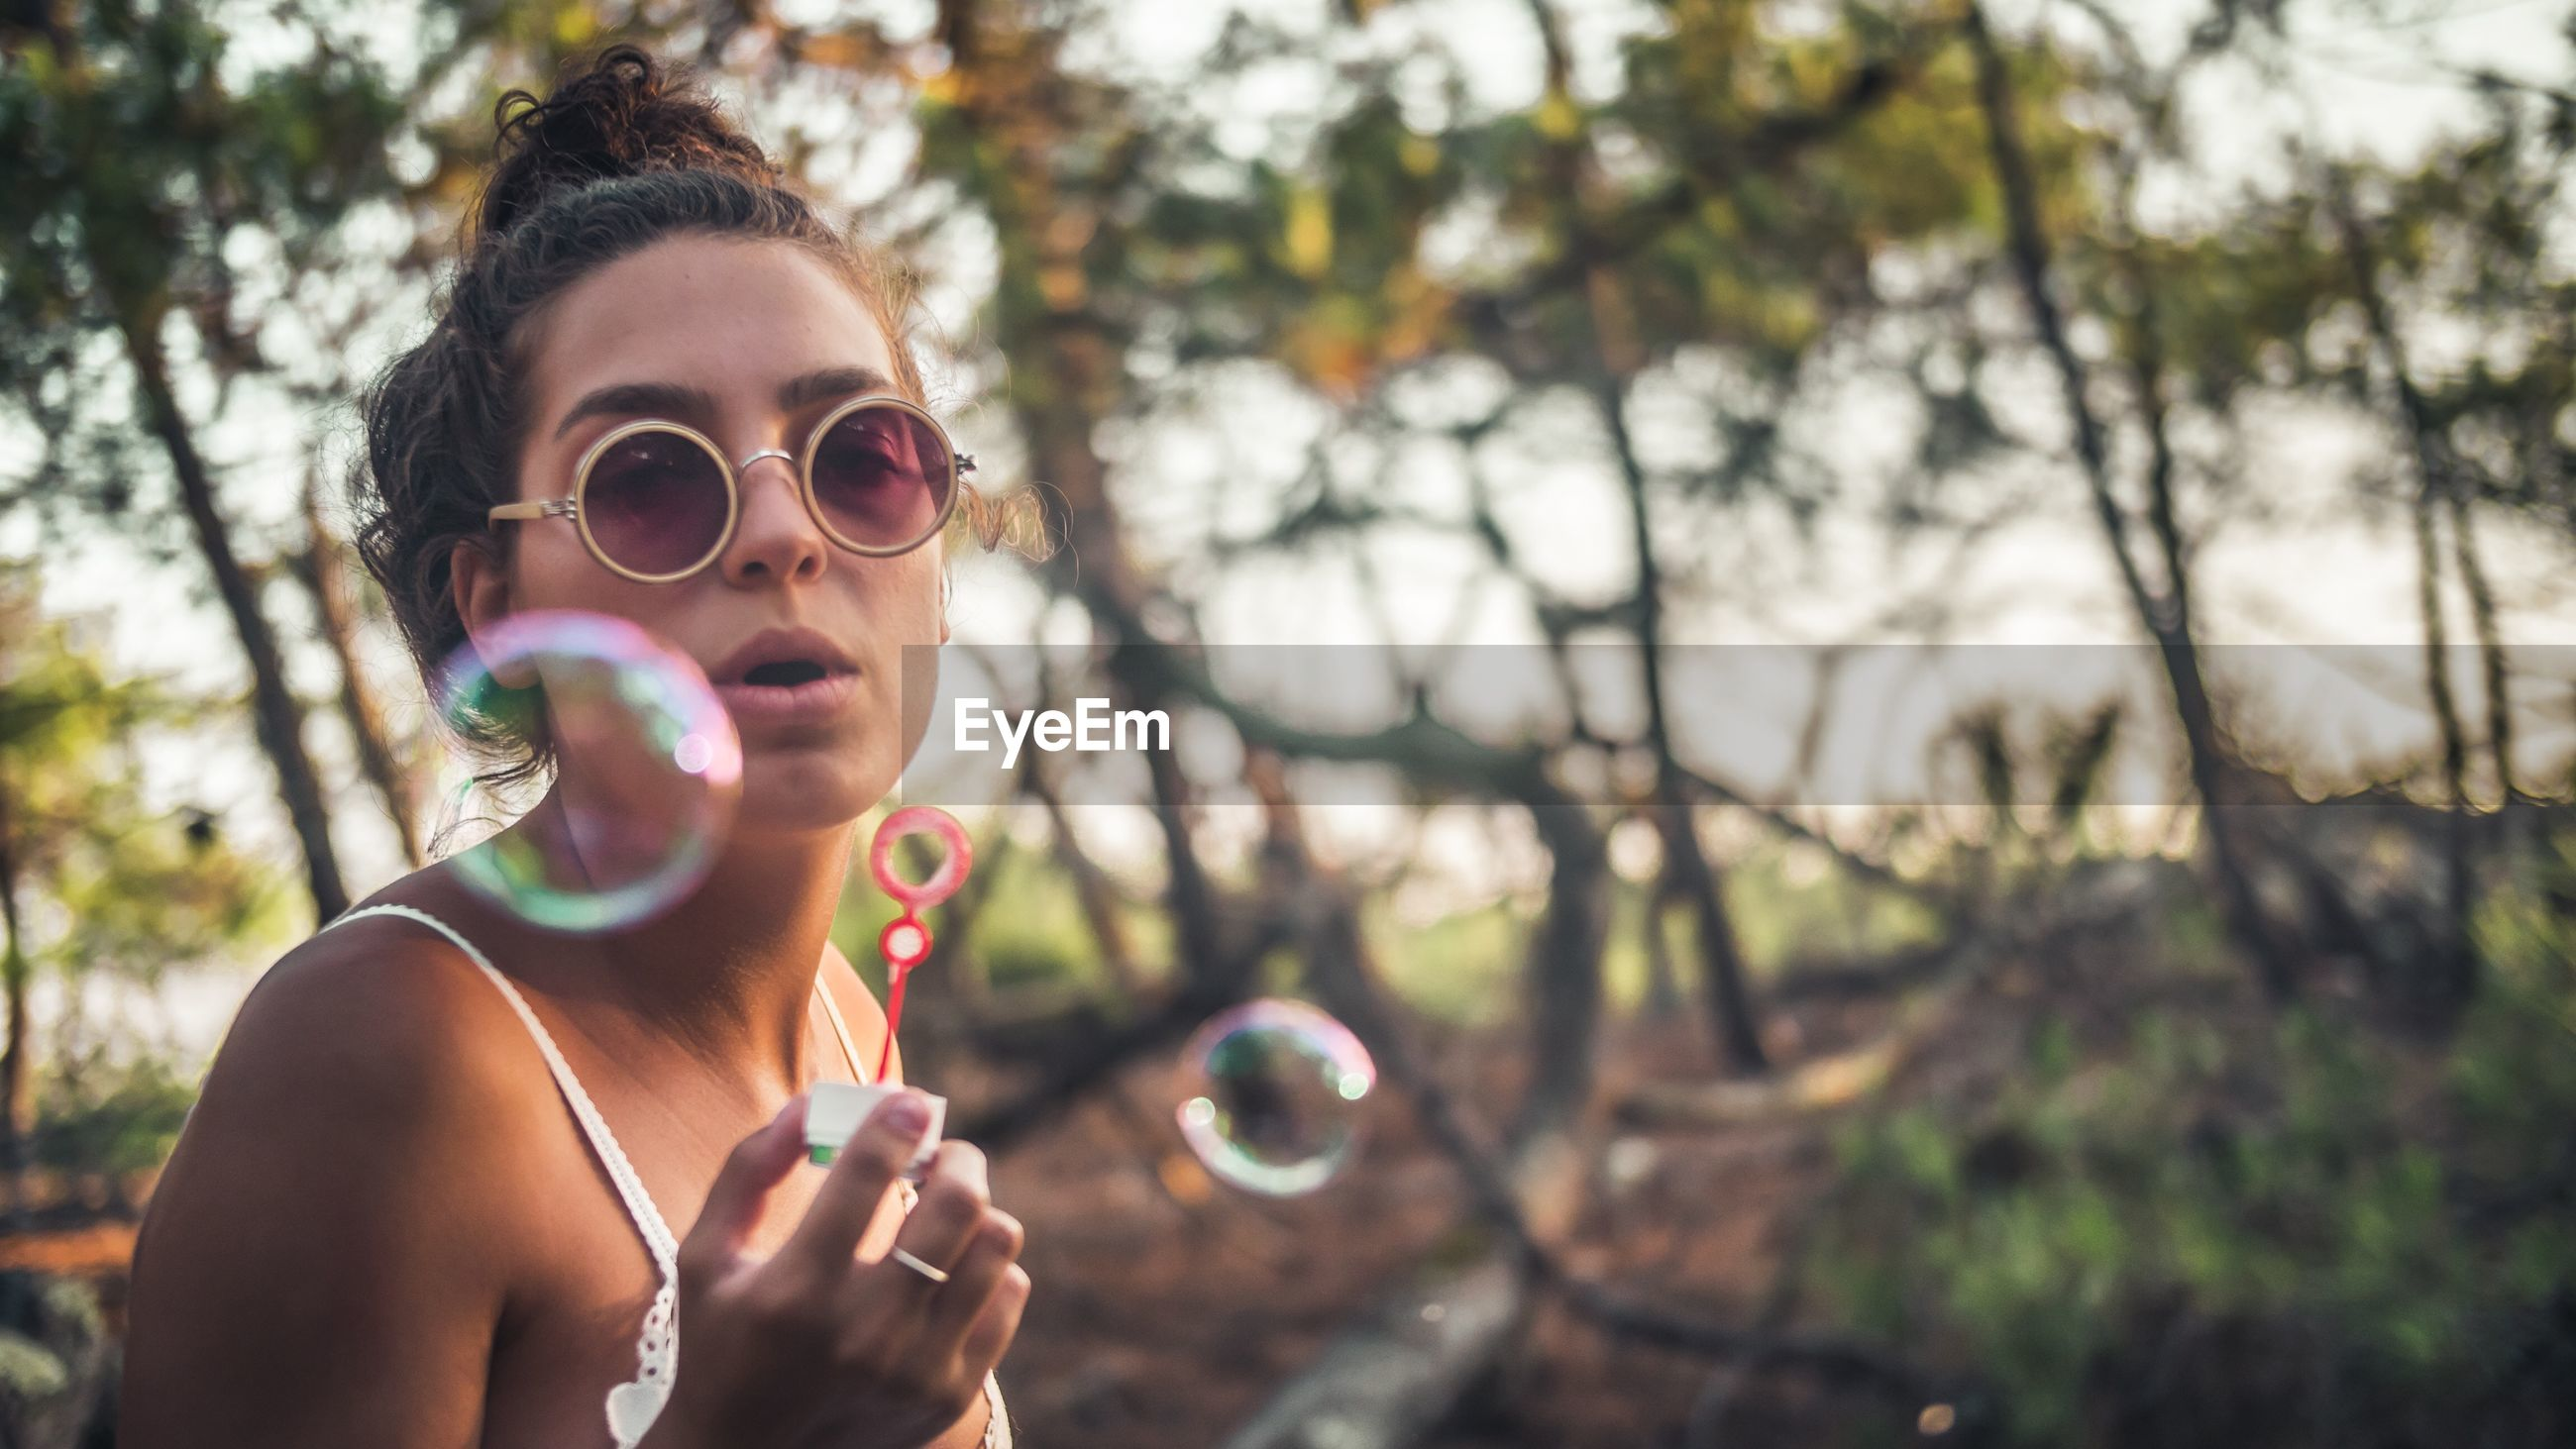 Young woman blowing bubbles at park